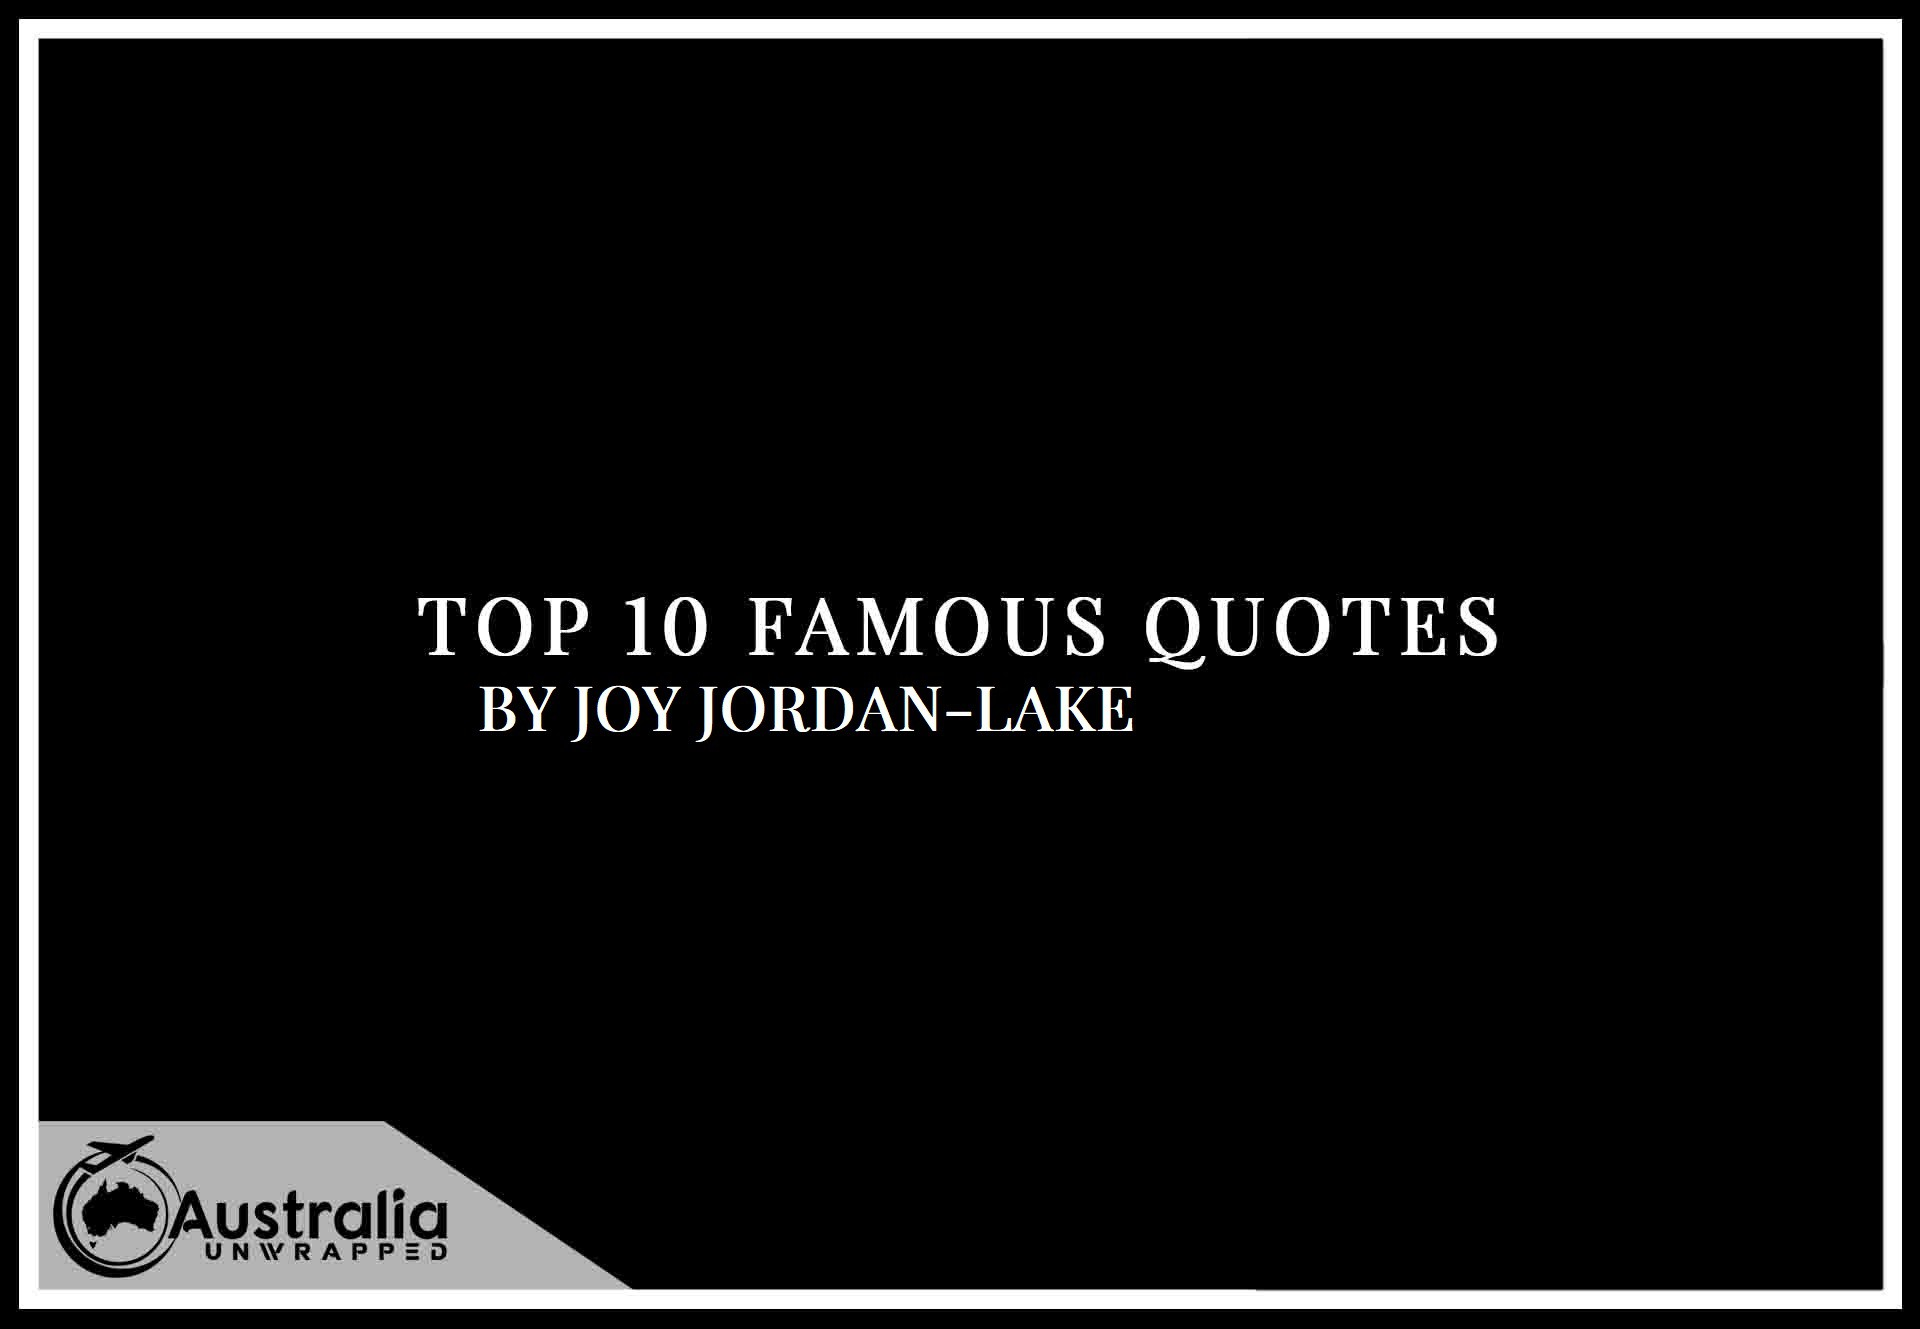 Top 10 Famous Quotes by Author Joy Jordan-Lake